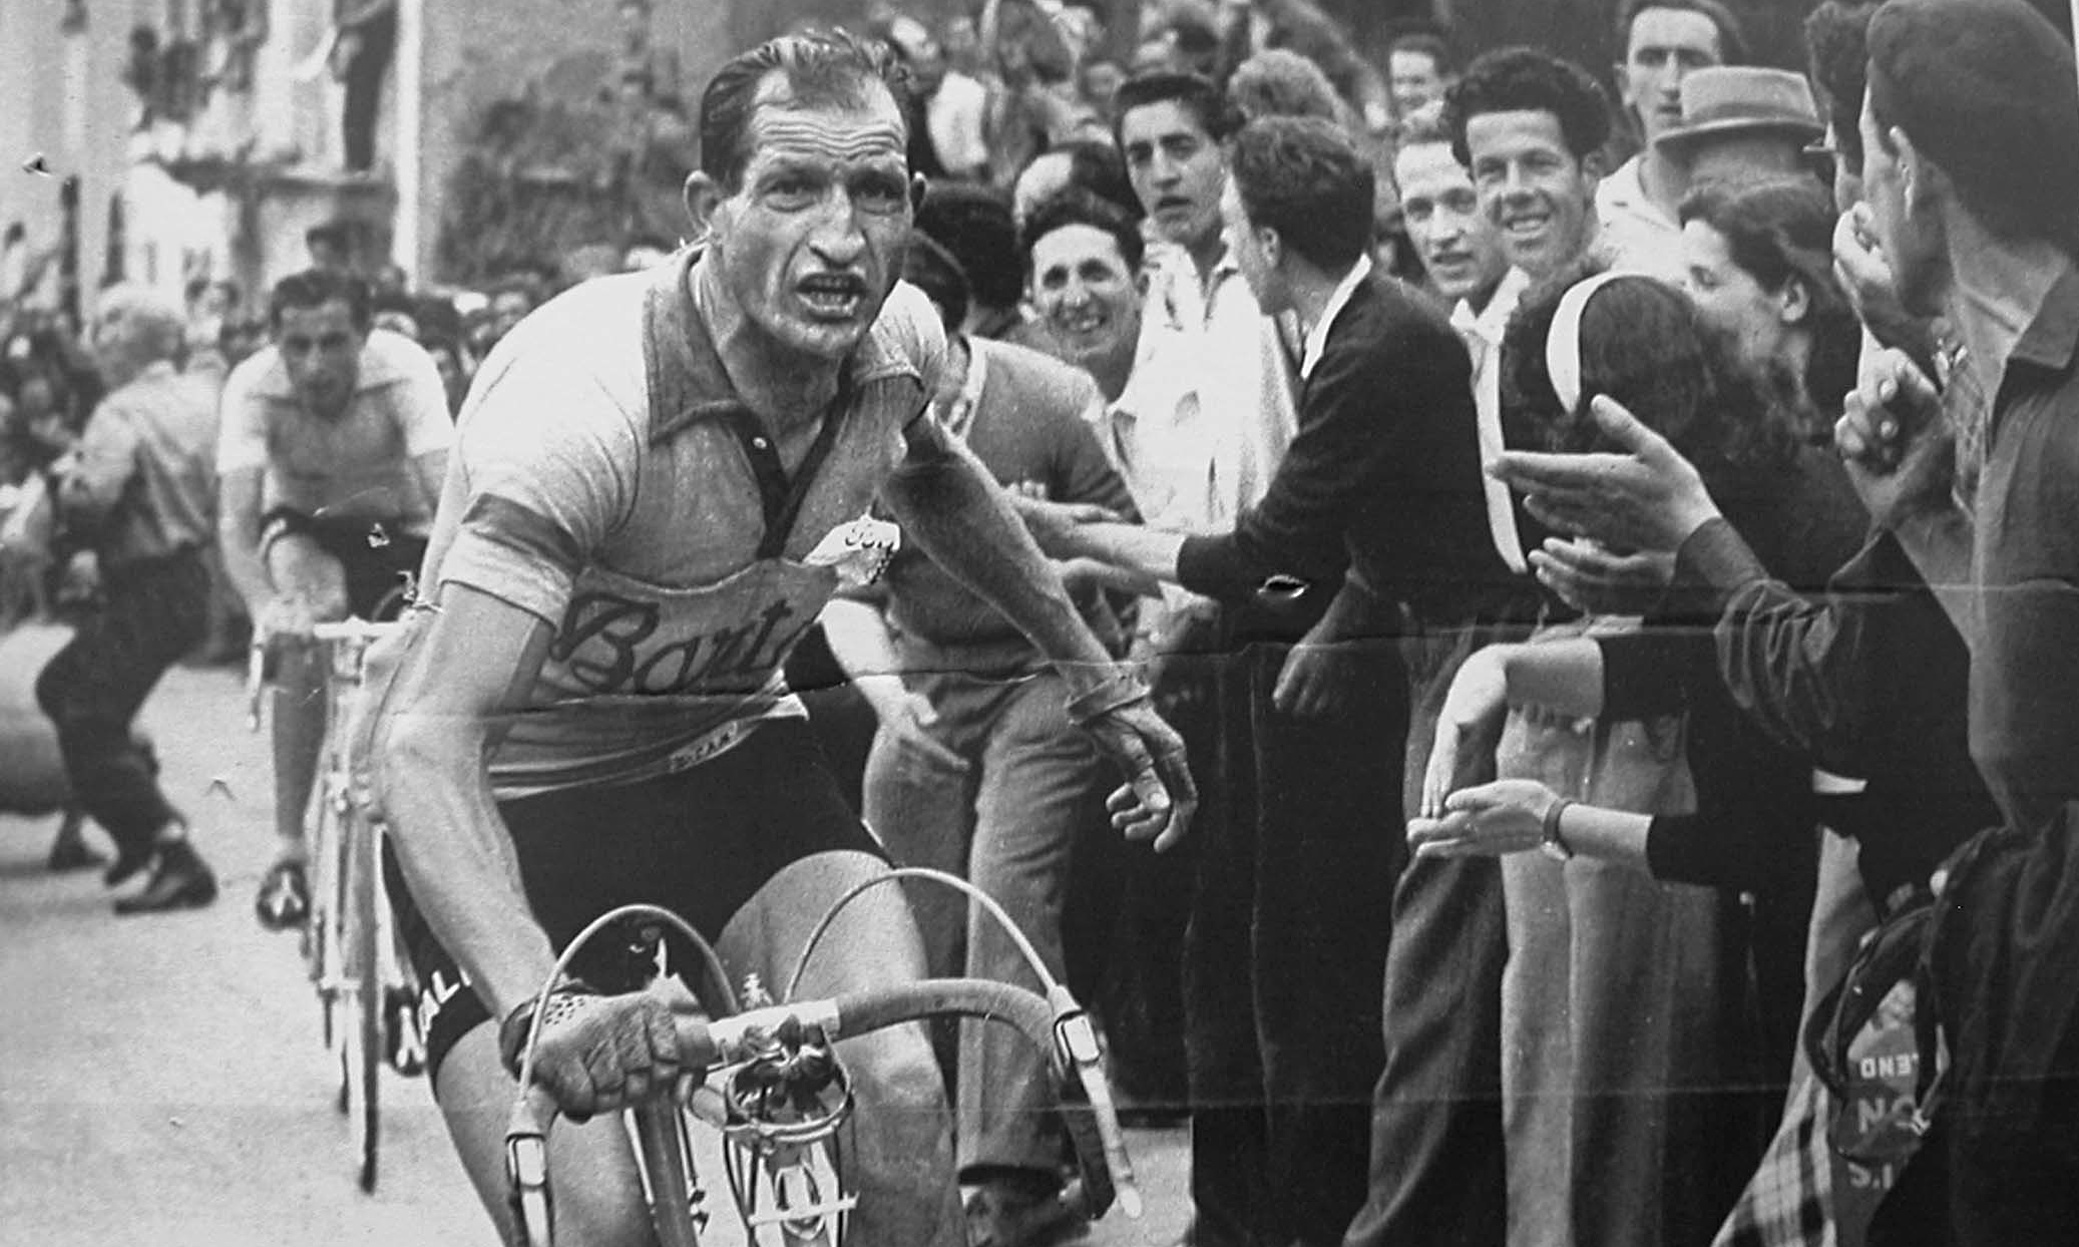 Italy Remembers Cycling Champion Who Helped Save Jews From The Nazis